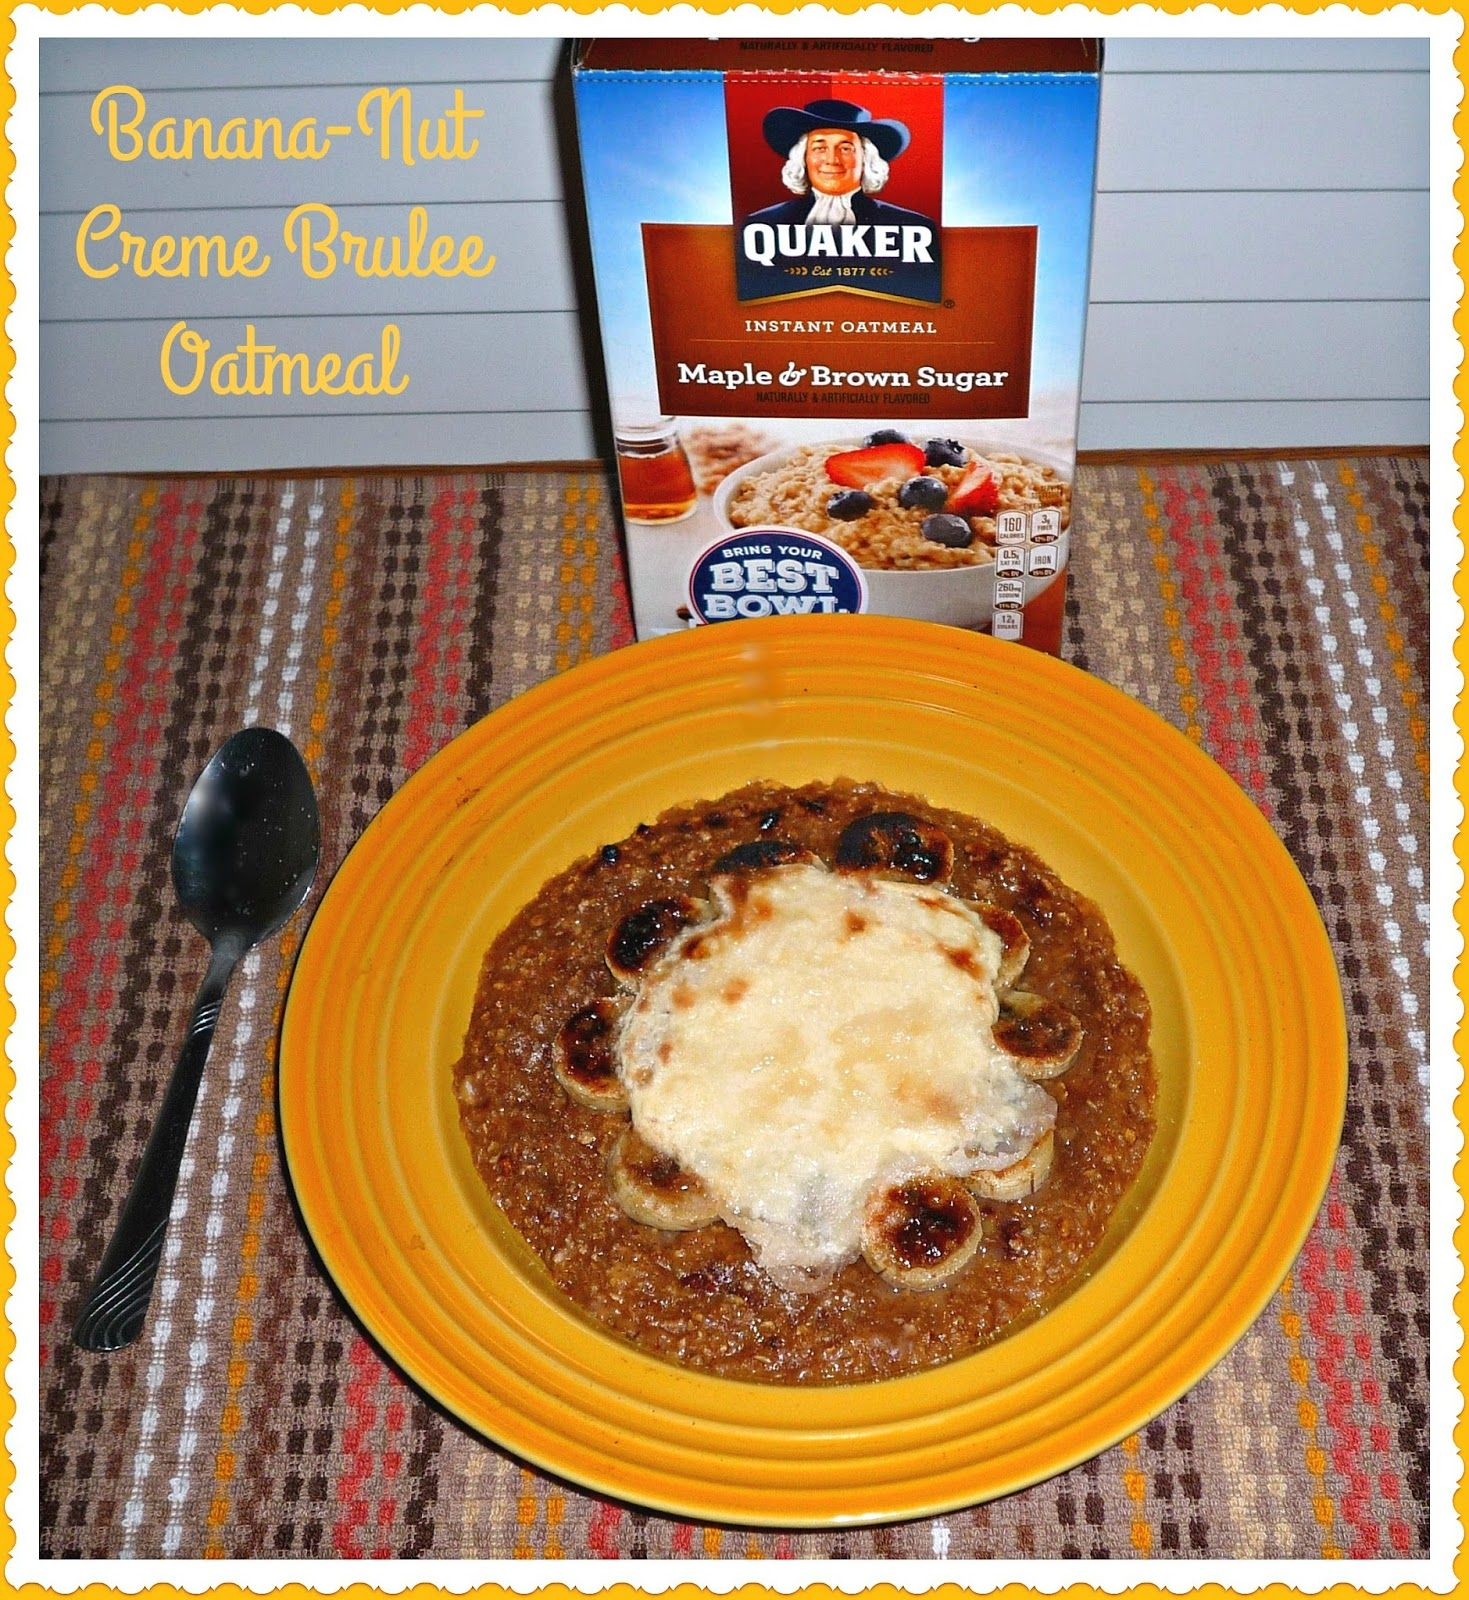 The Weekend Gourmet: Banana-Nut Creme Brulee Oatmeal Featuring Quaker® Oats #BringYourBestBowl #Target #ad